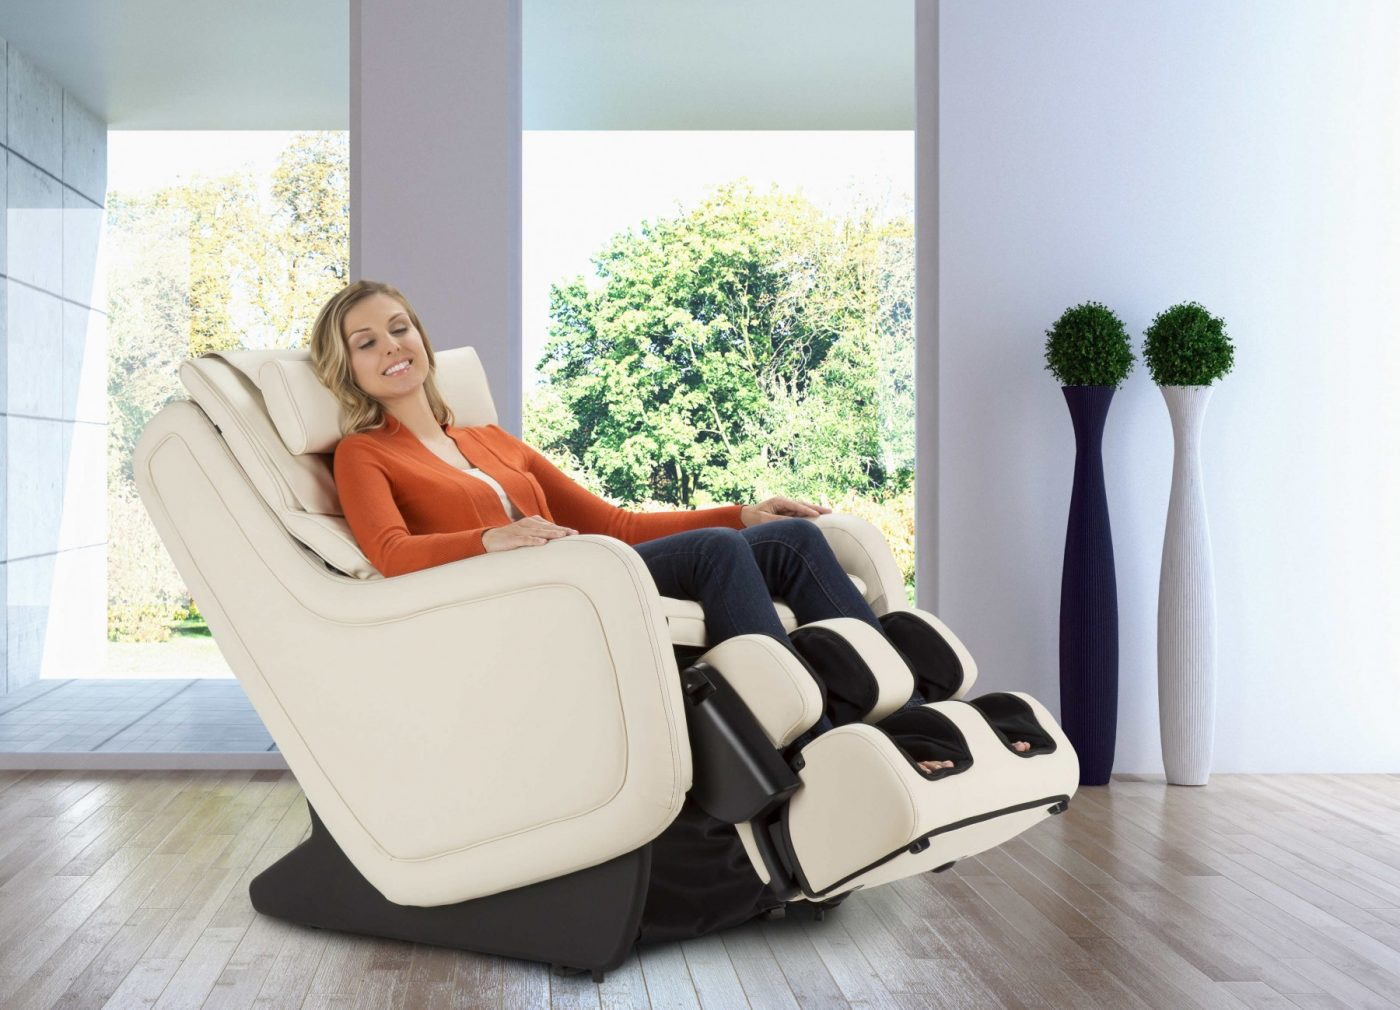 massage-chairs-relaxation